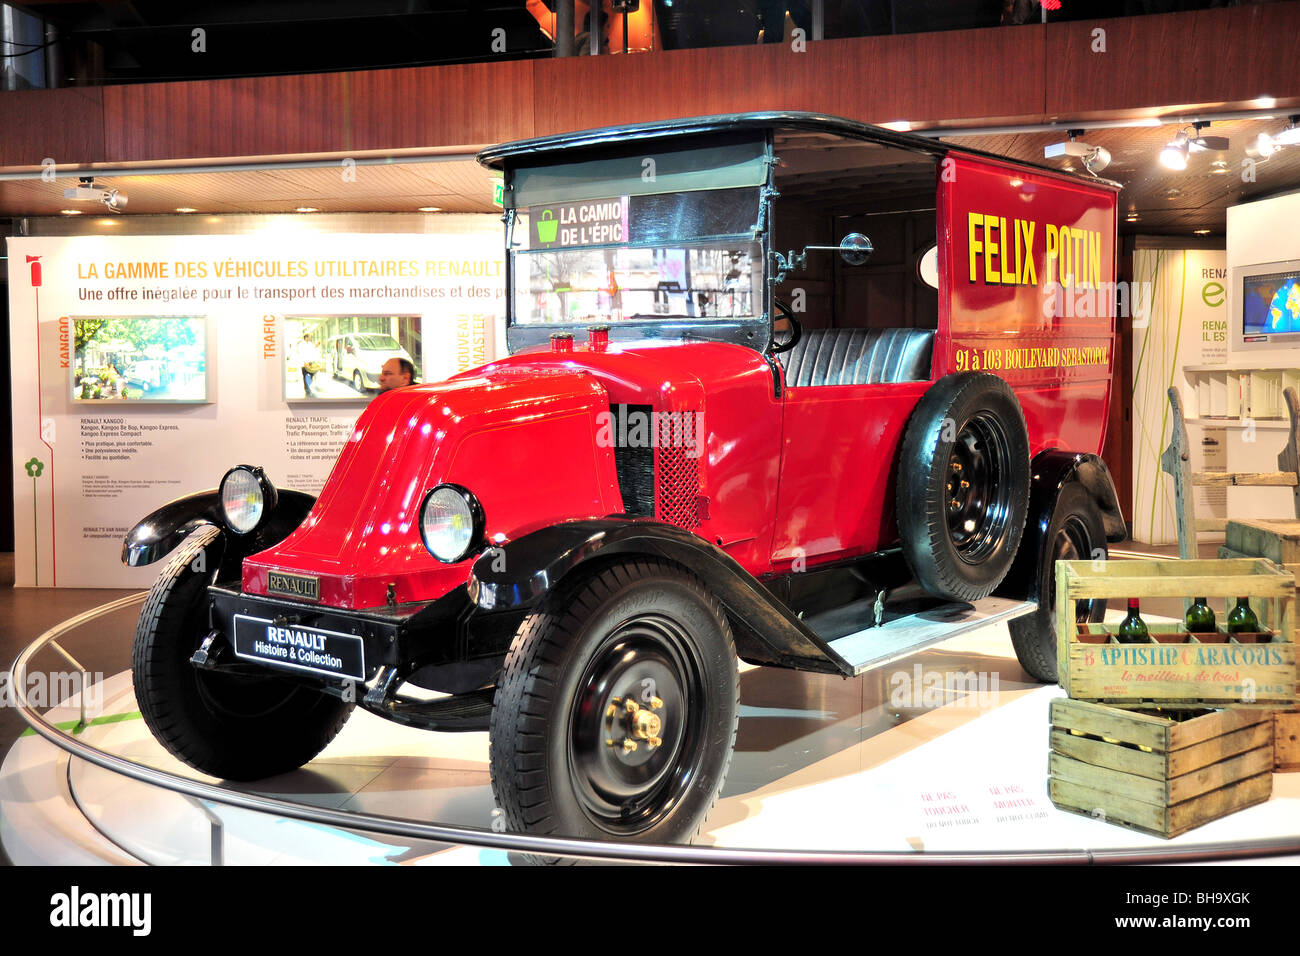 Paris Old Delivery Truck on display in Renault Car Showroom Stock ...